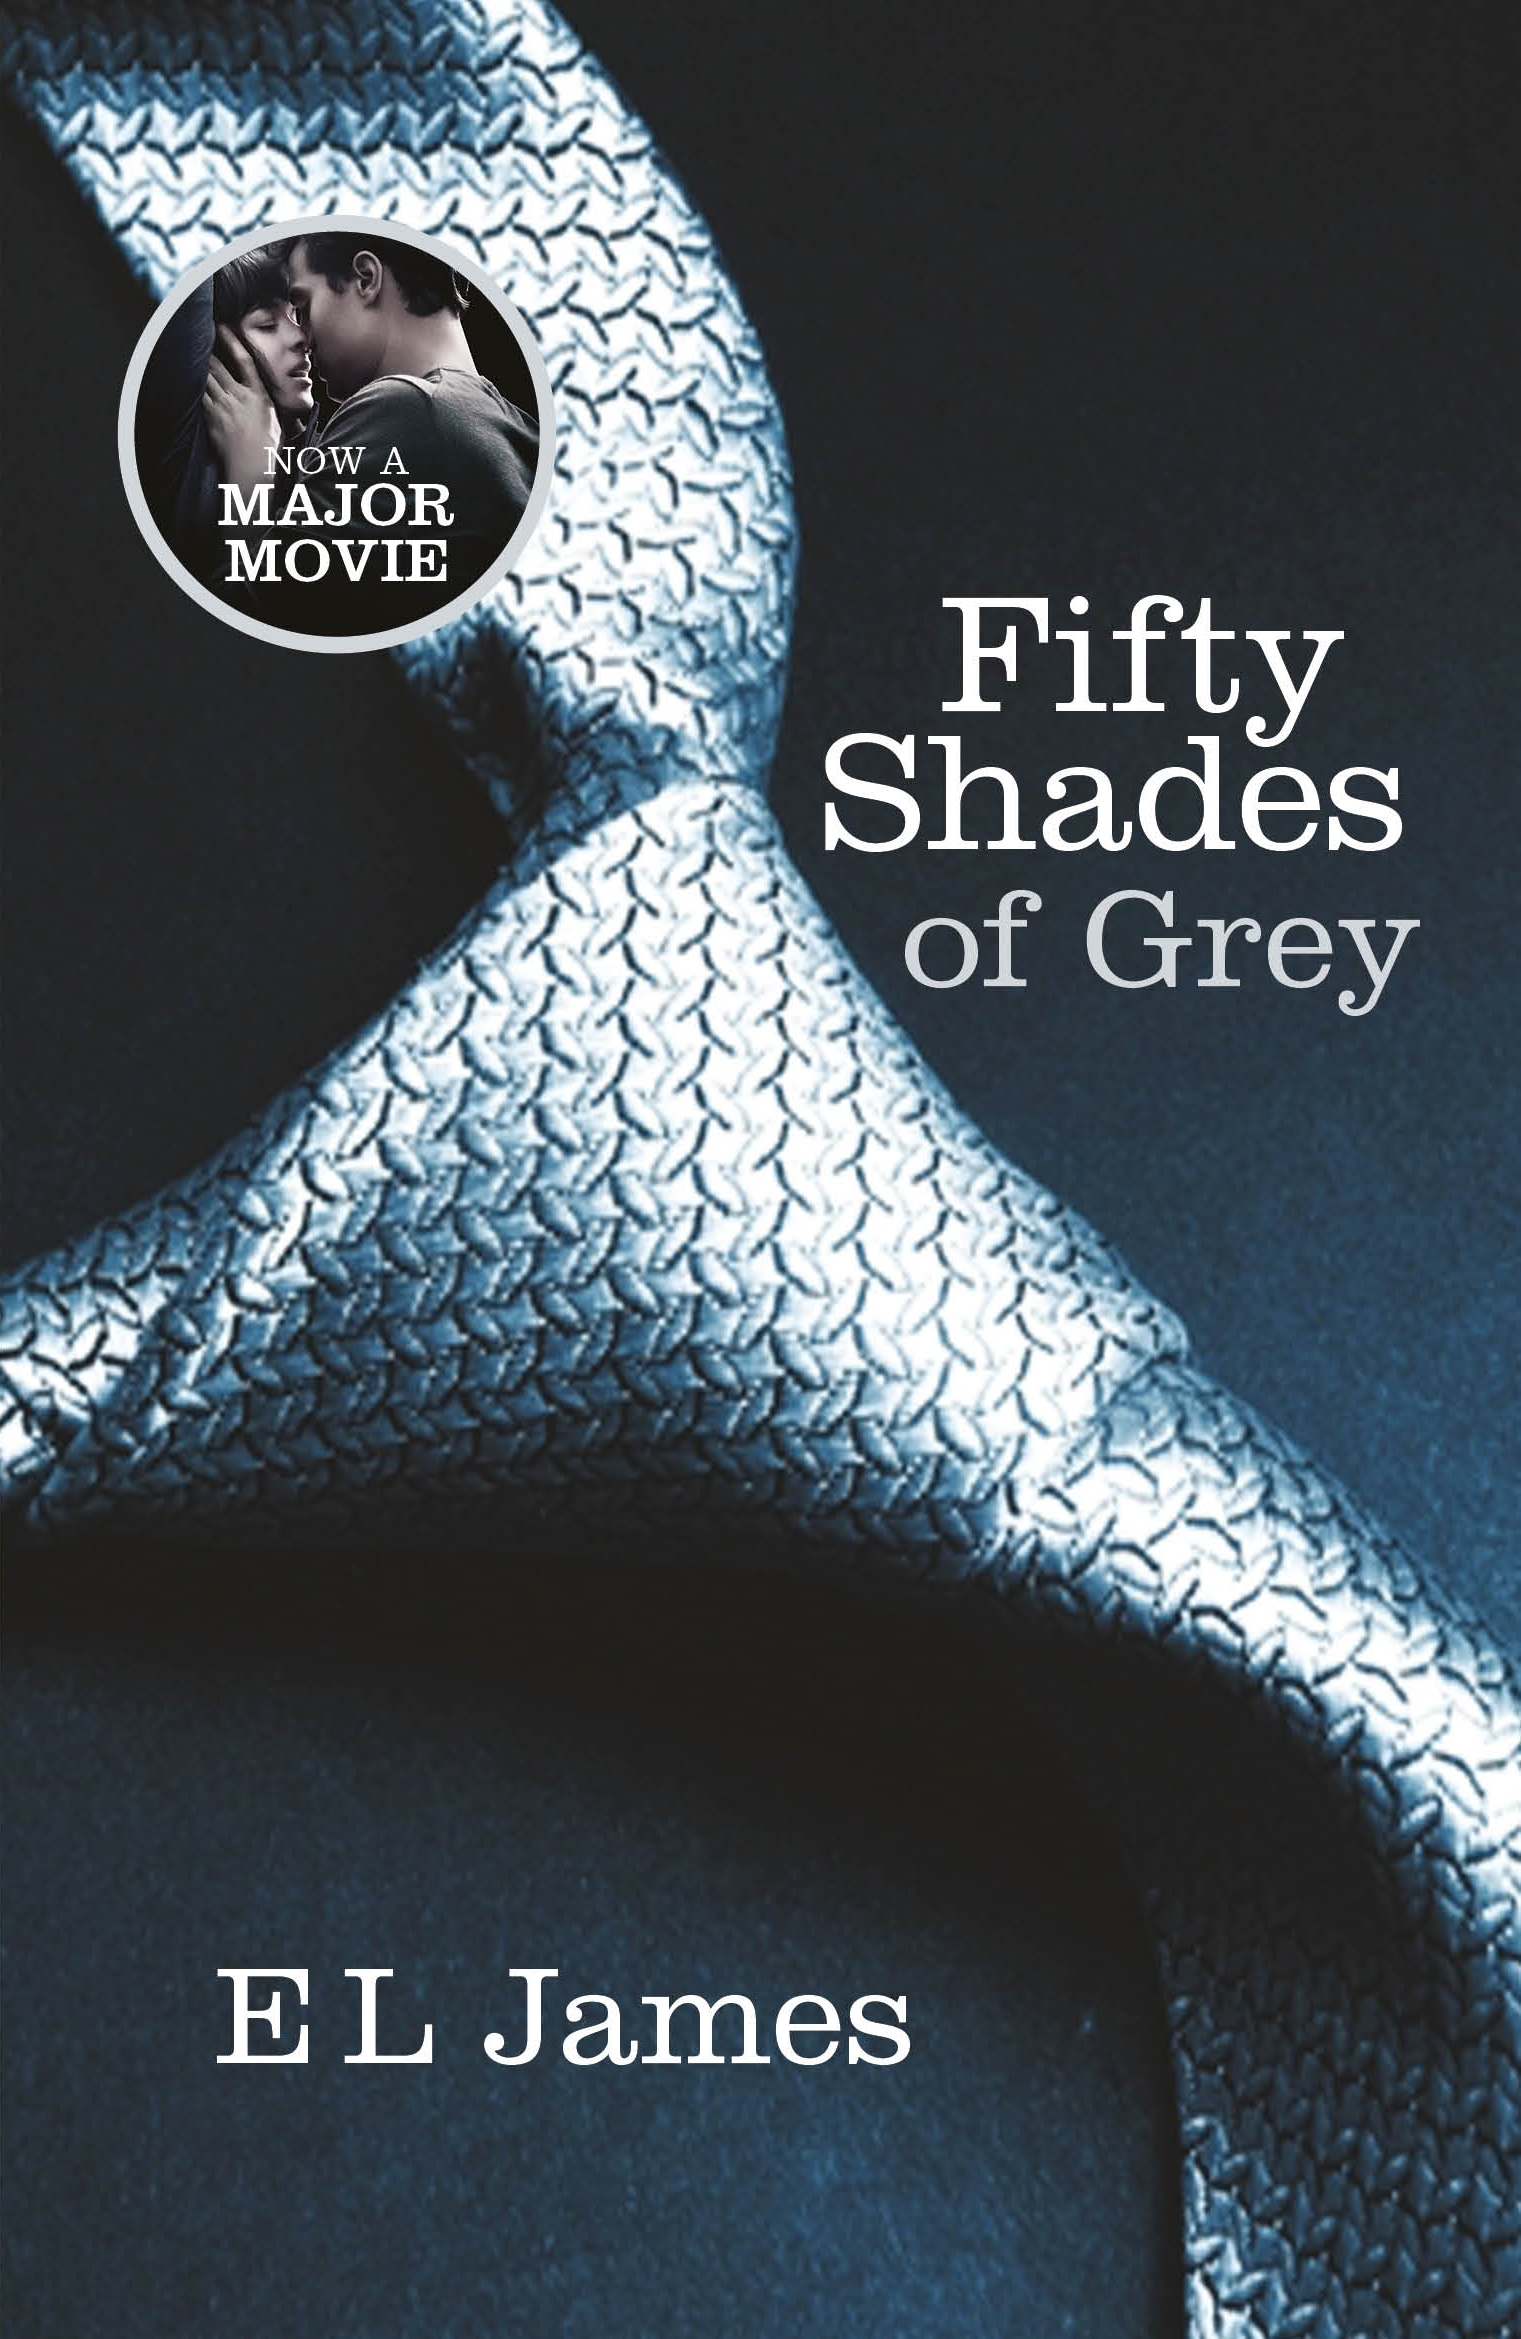 Fifty shades of grey by e l james penguin books australia 50 shades of grey house